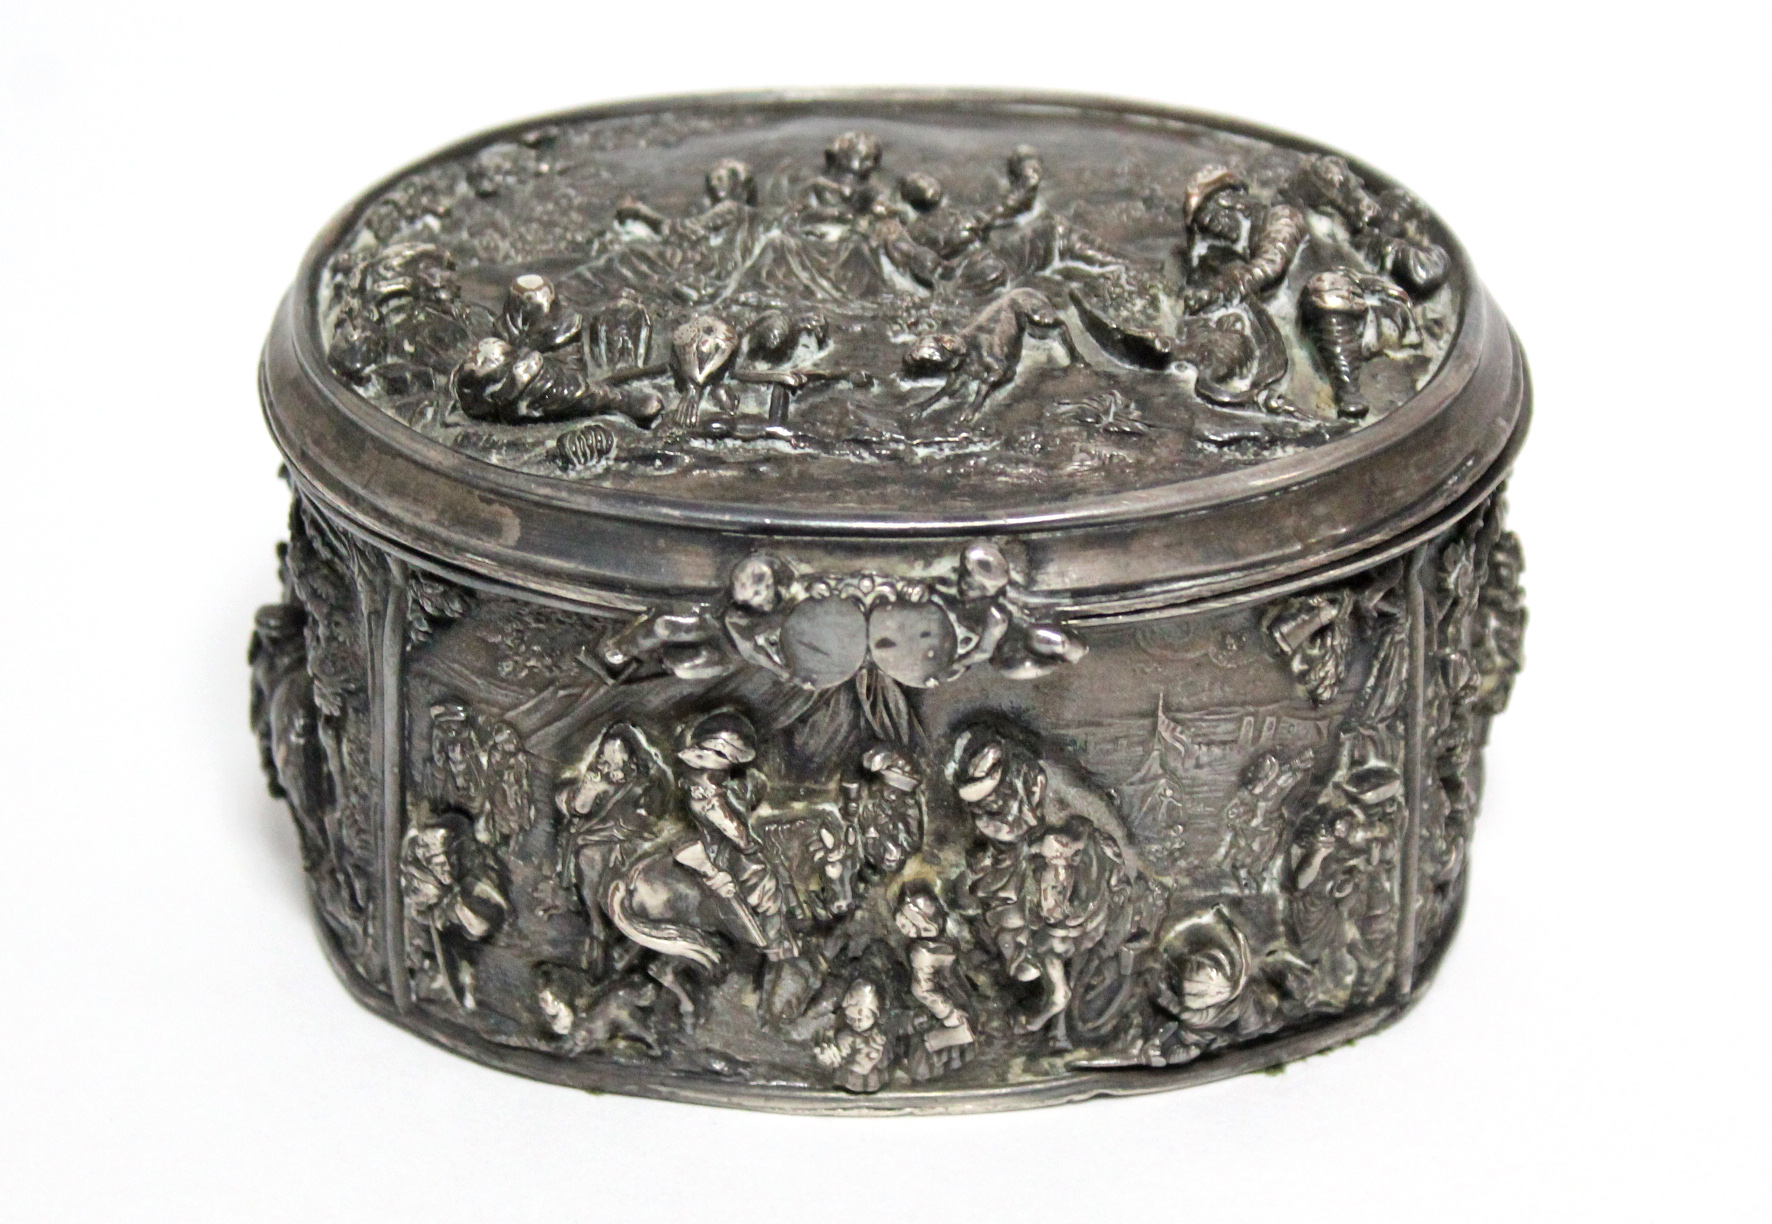 A continental white metal oval box, decorated in relief with scenes of huntsmen, figures & animals